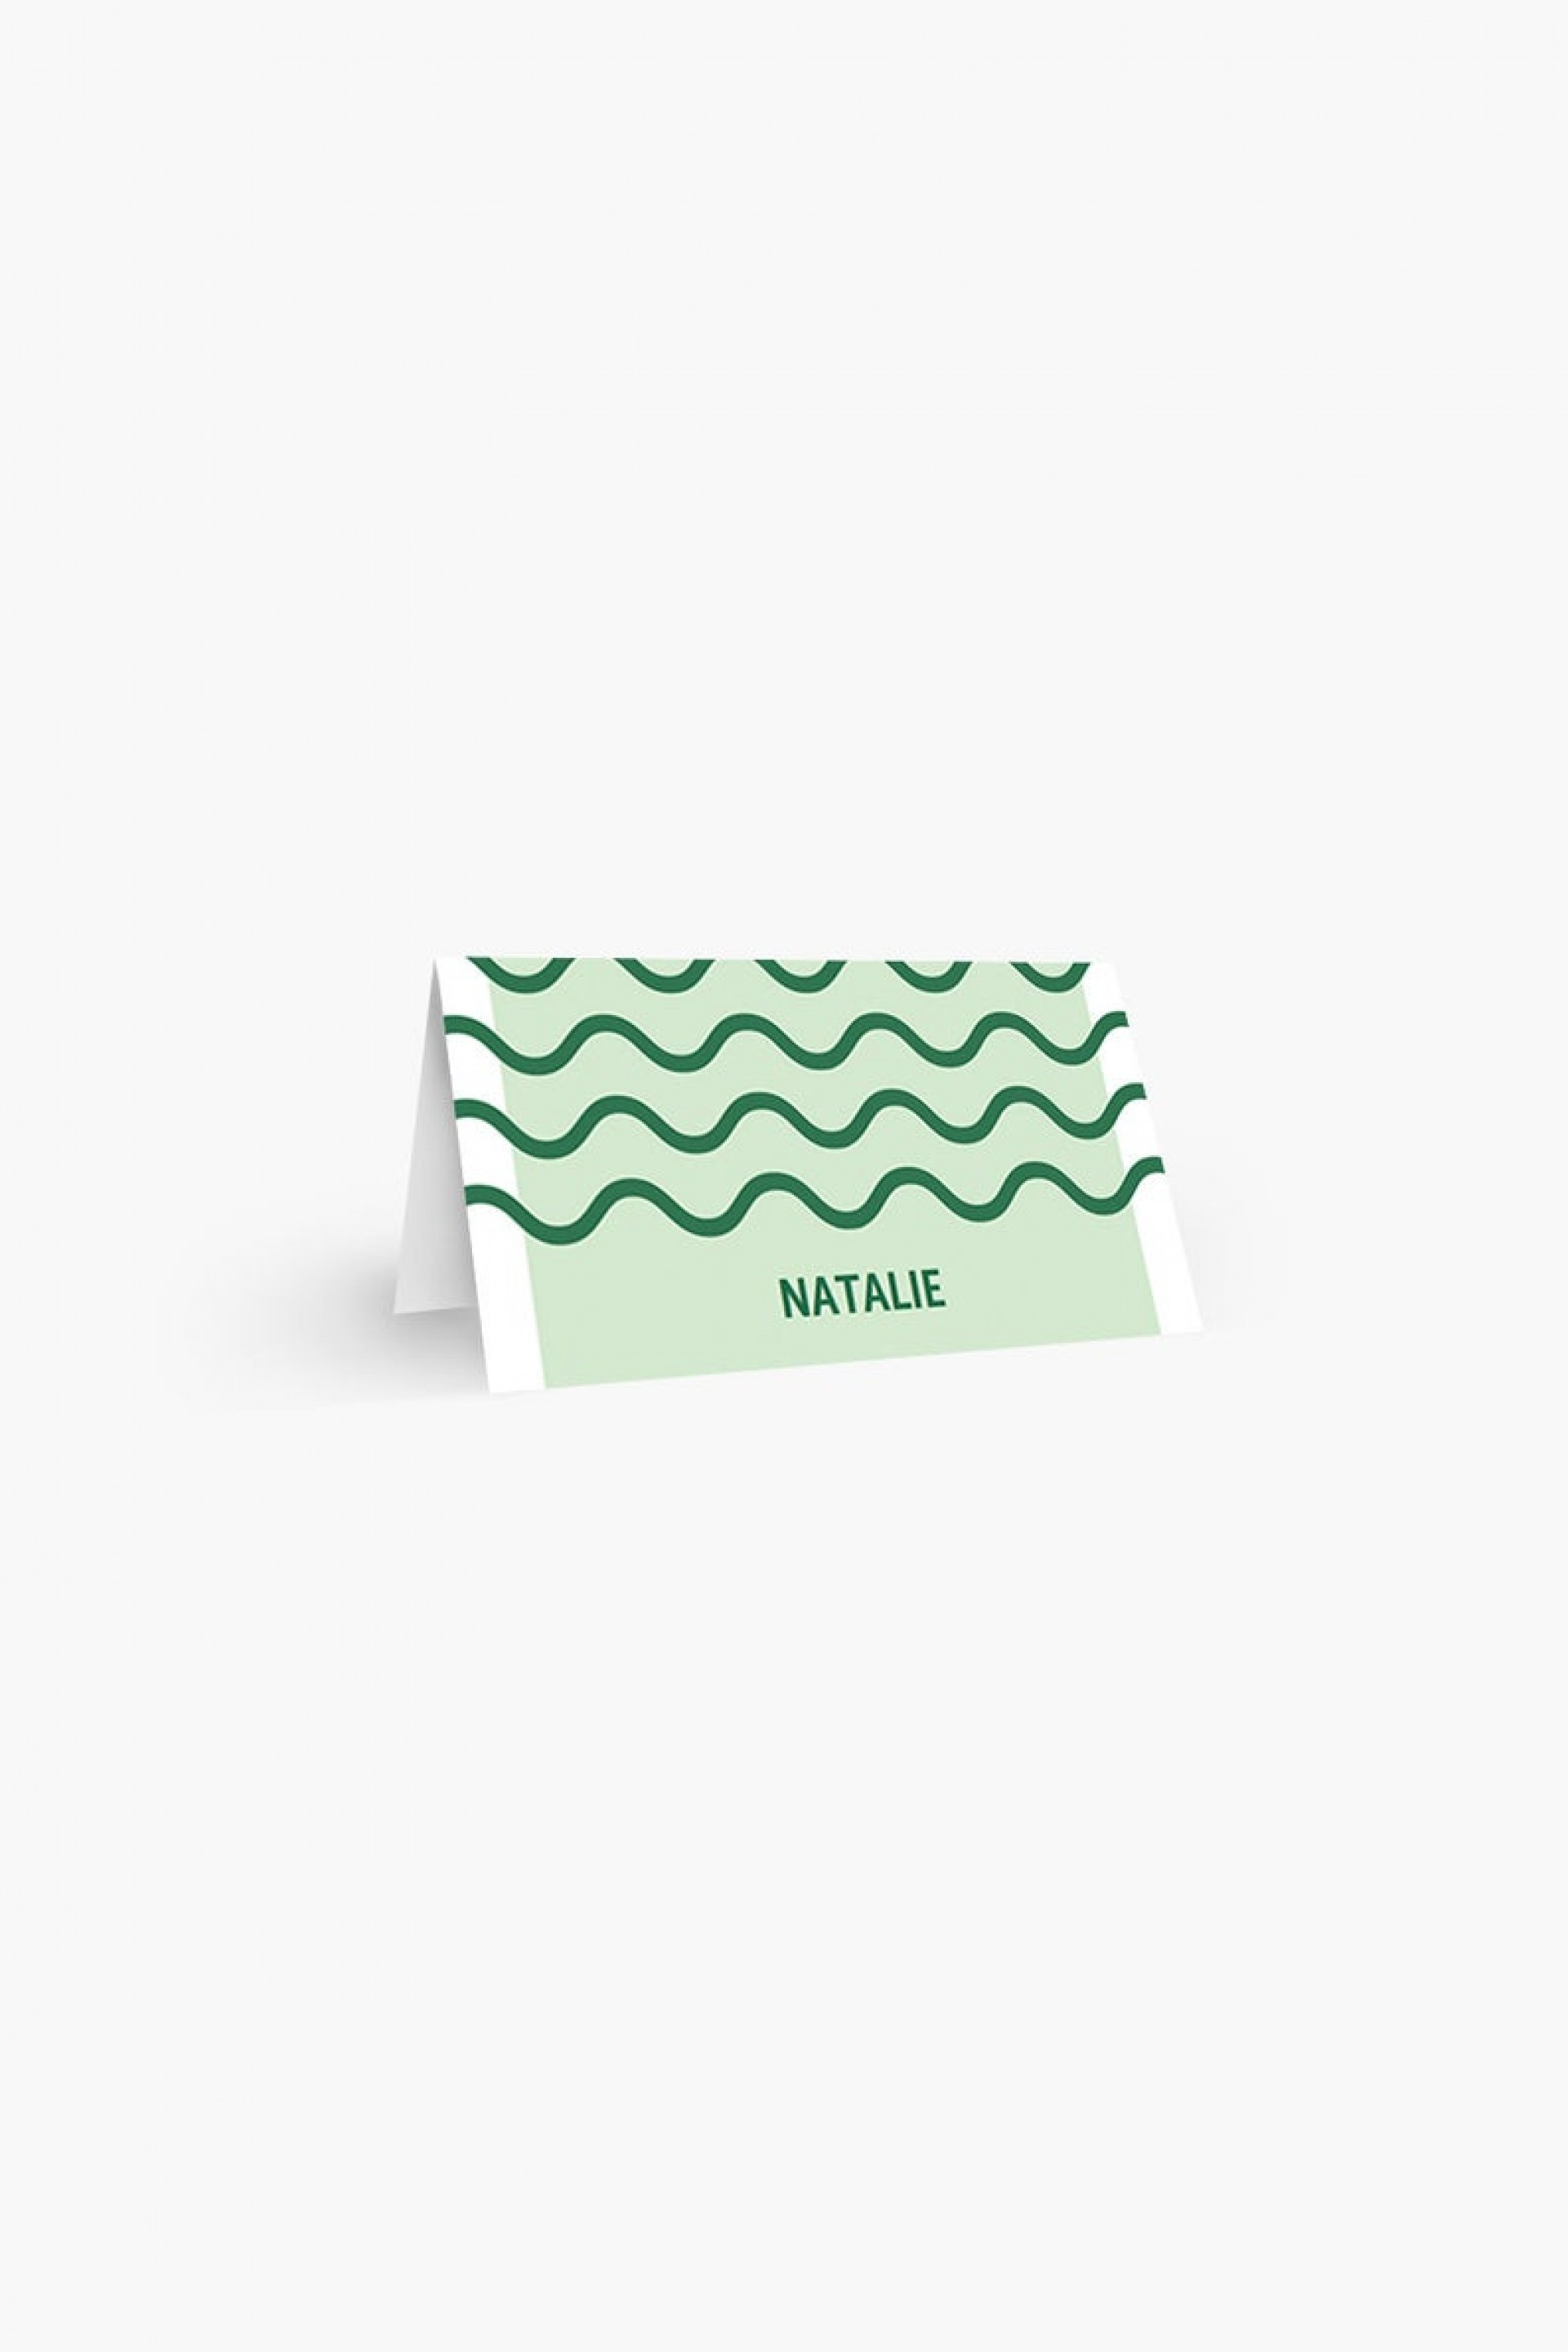 017 Printable Place Cards Template Breathtaking Ideas Free In Paper Source Templates Place Cards